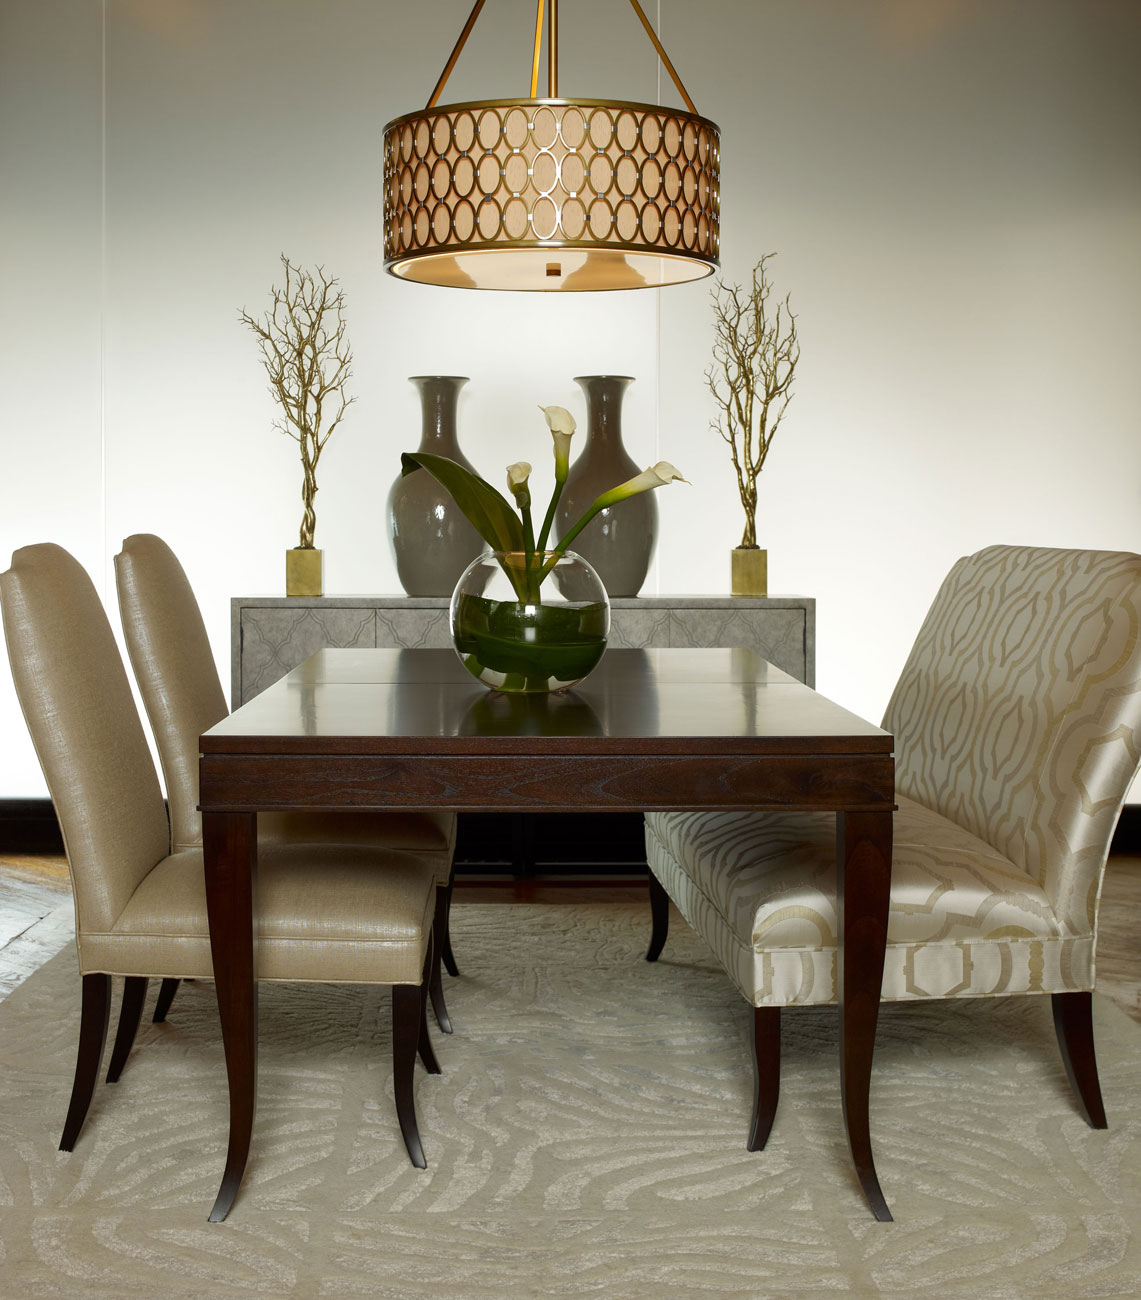 Modern furniture 2013 candice olson 39 s dining room collection for Modern dining room designs 2013